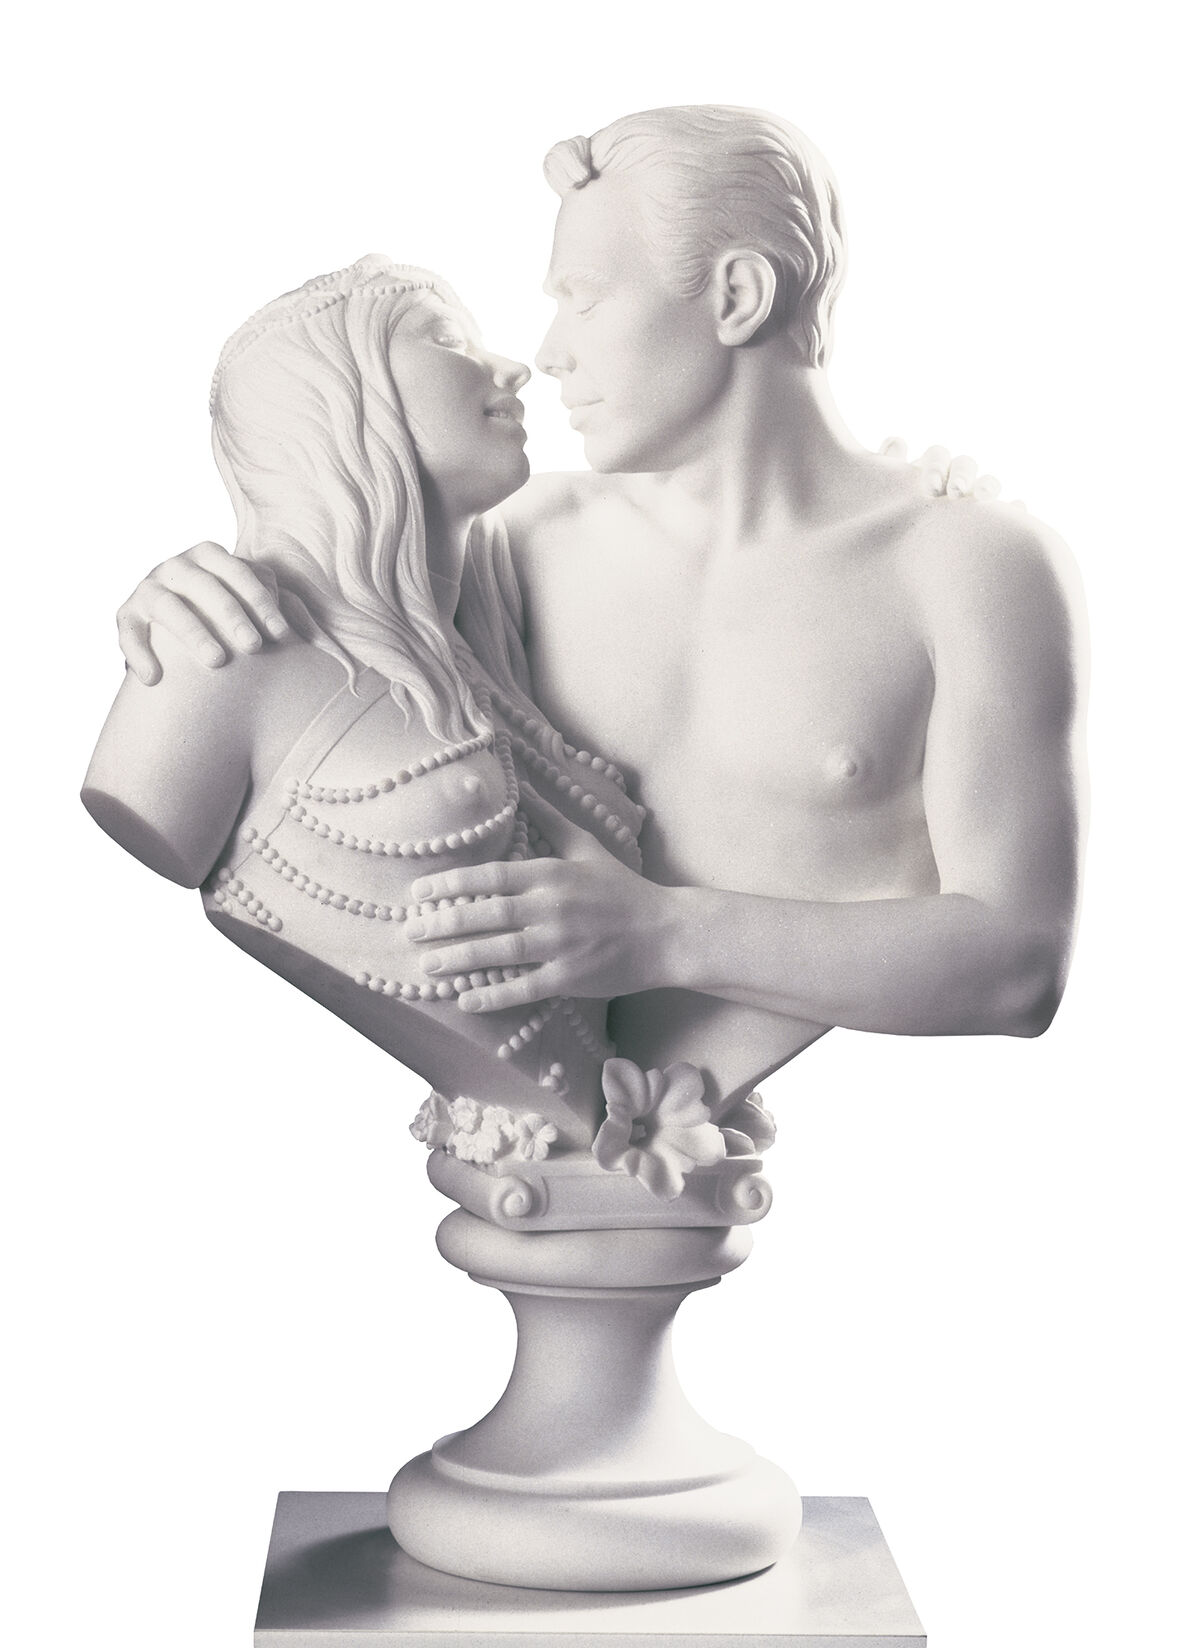 Jeff Koons, Bourgeois Bust—Jeff and Ilona, 1991. © Jeff Koons. Photo by Jim Strong, New York. Courtesy of the Pinault Collection and Museo Jumex.